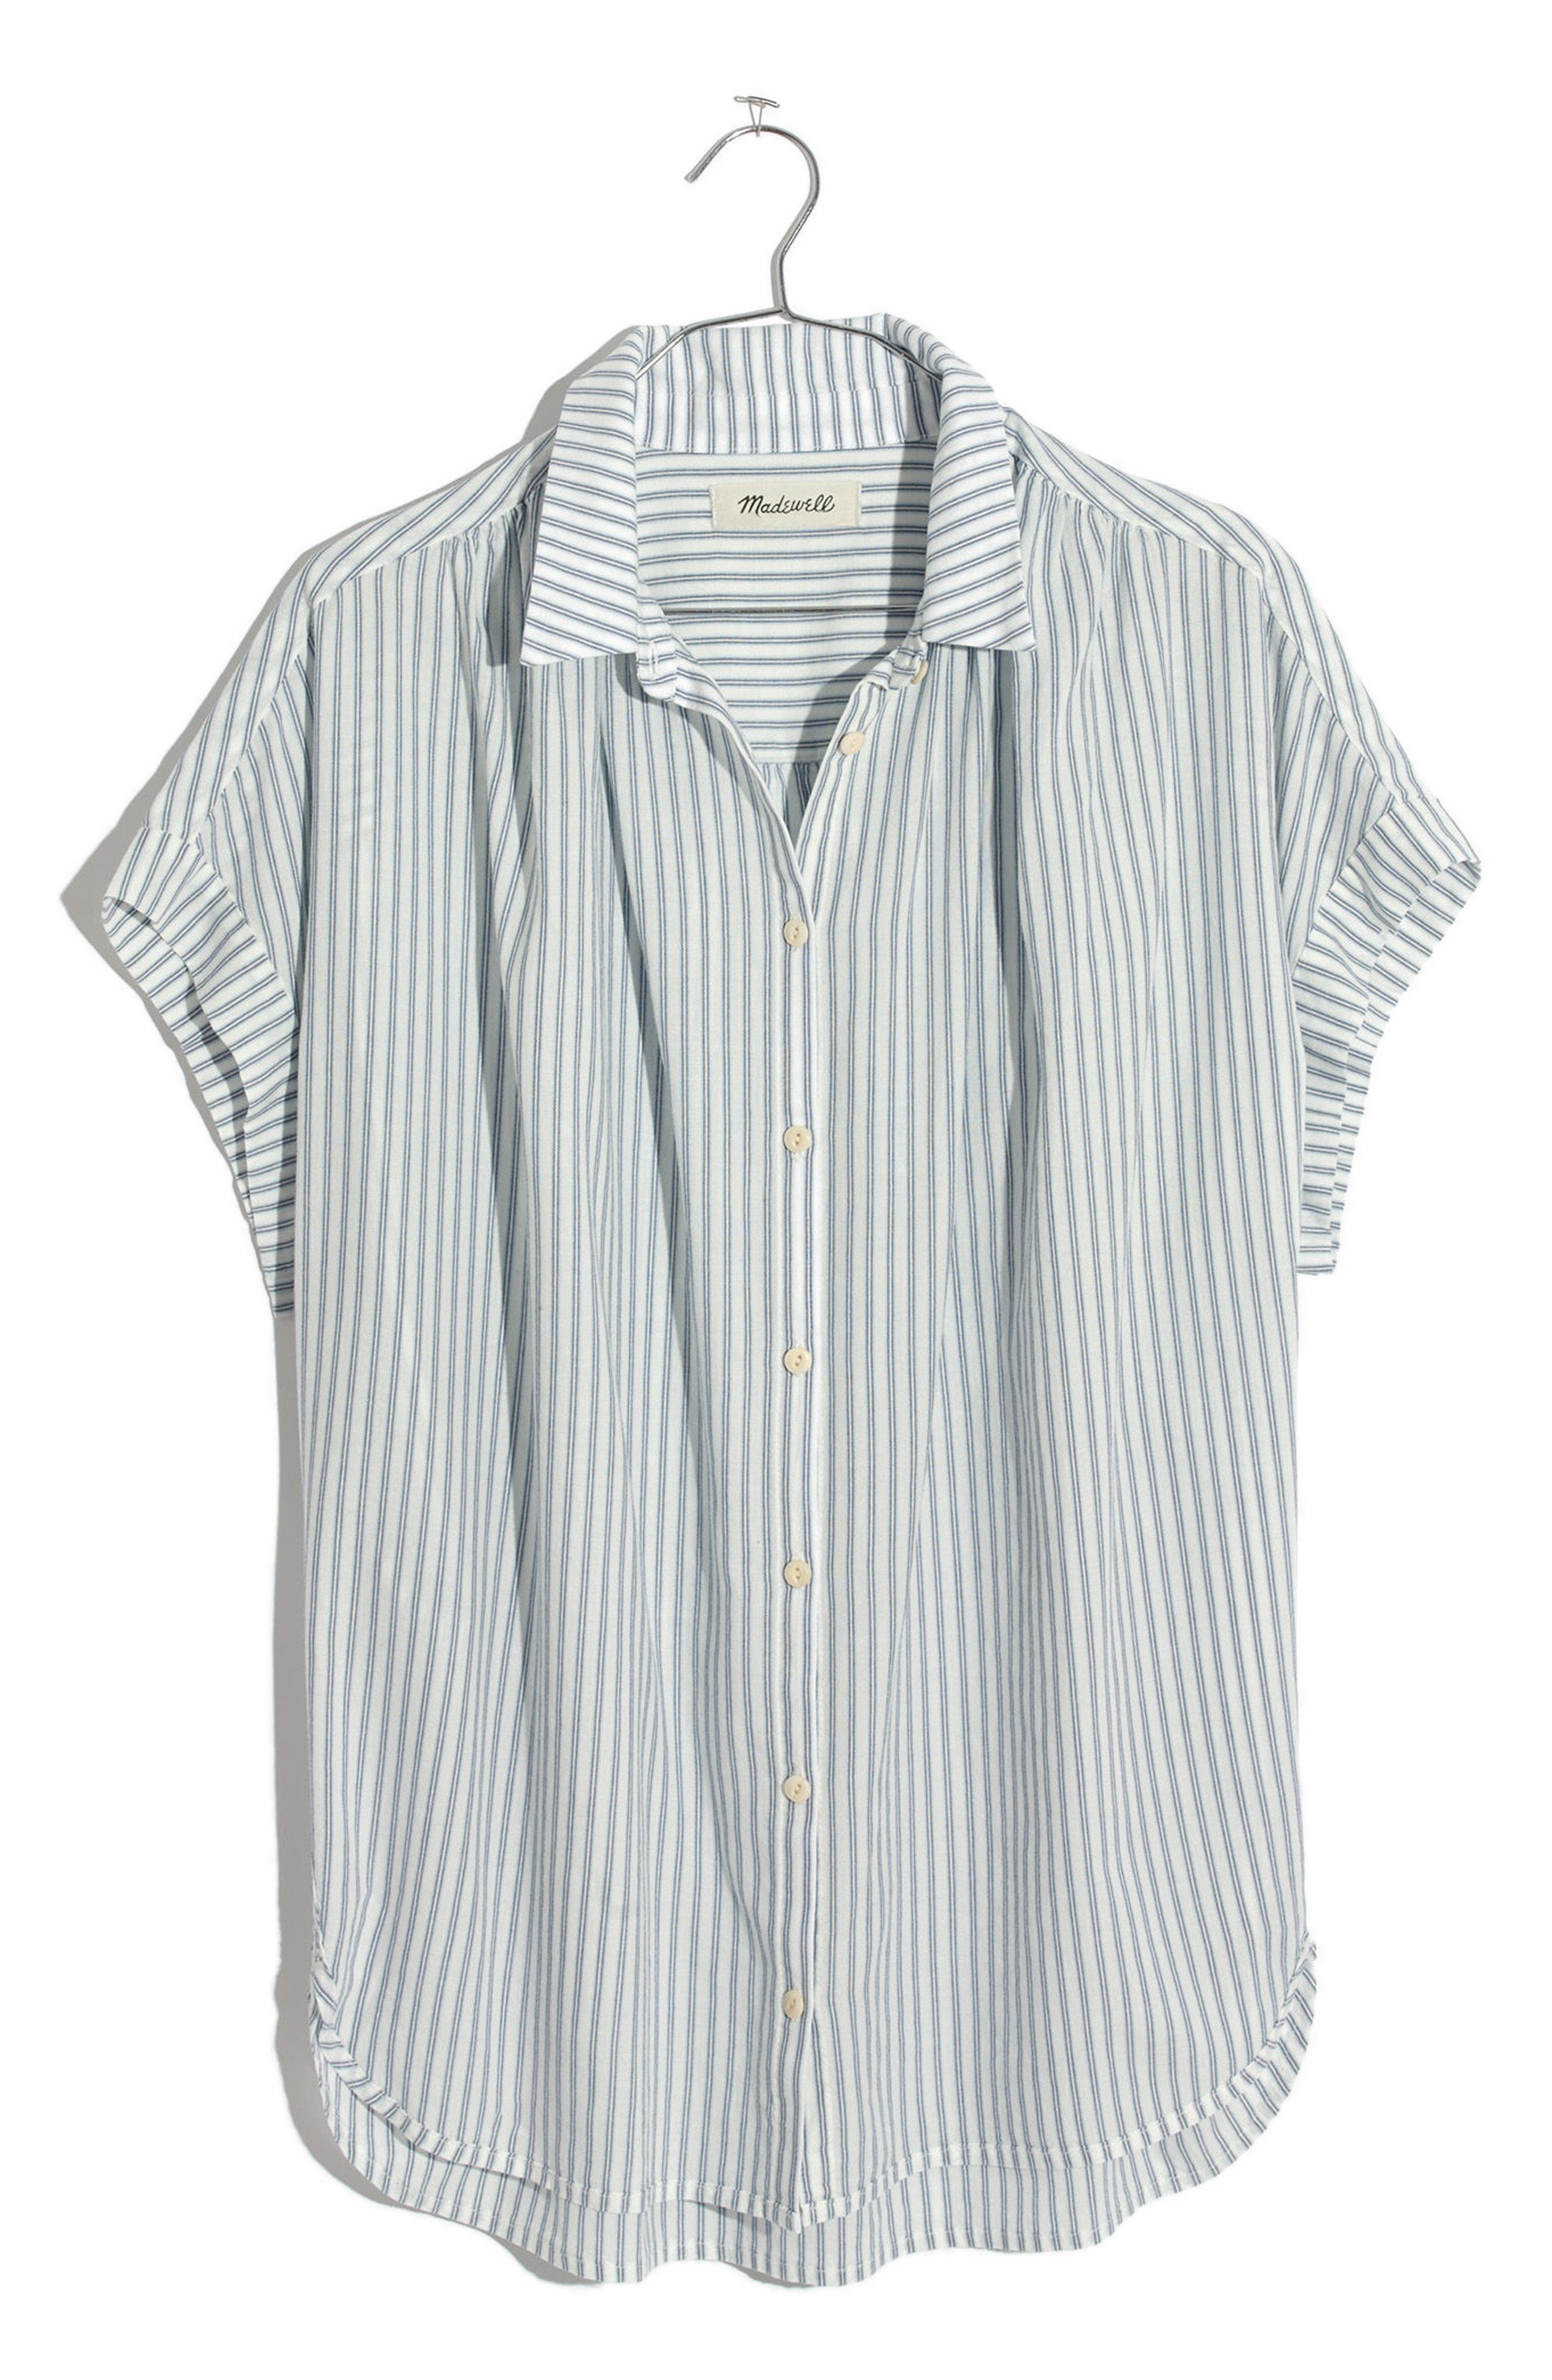 20cff4fa9a3d Central Stripe Shirt. Short Sleeve Striped ...